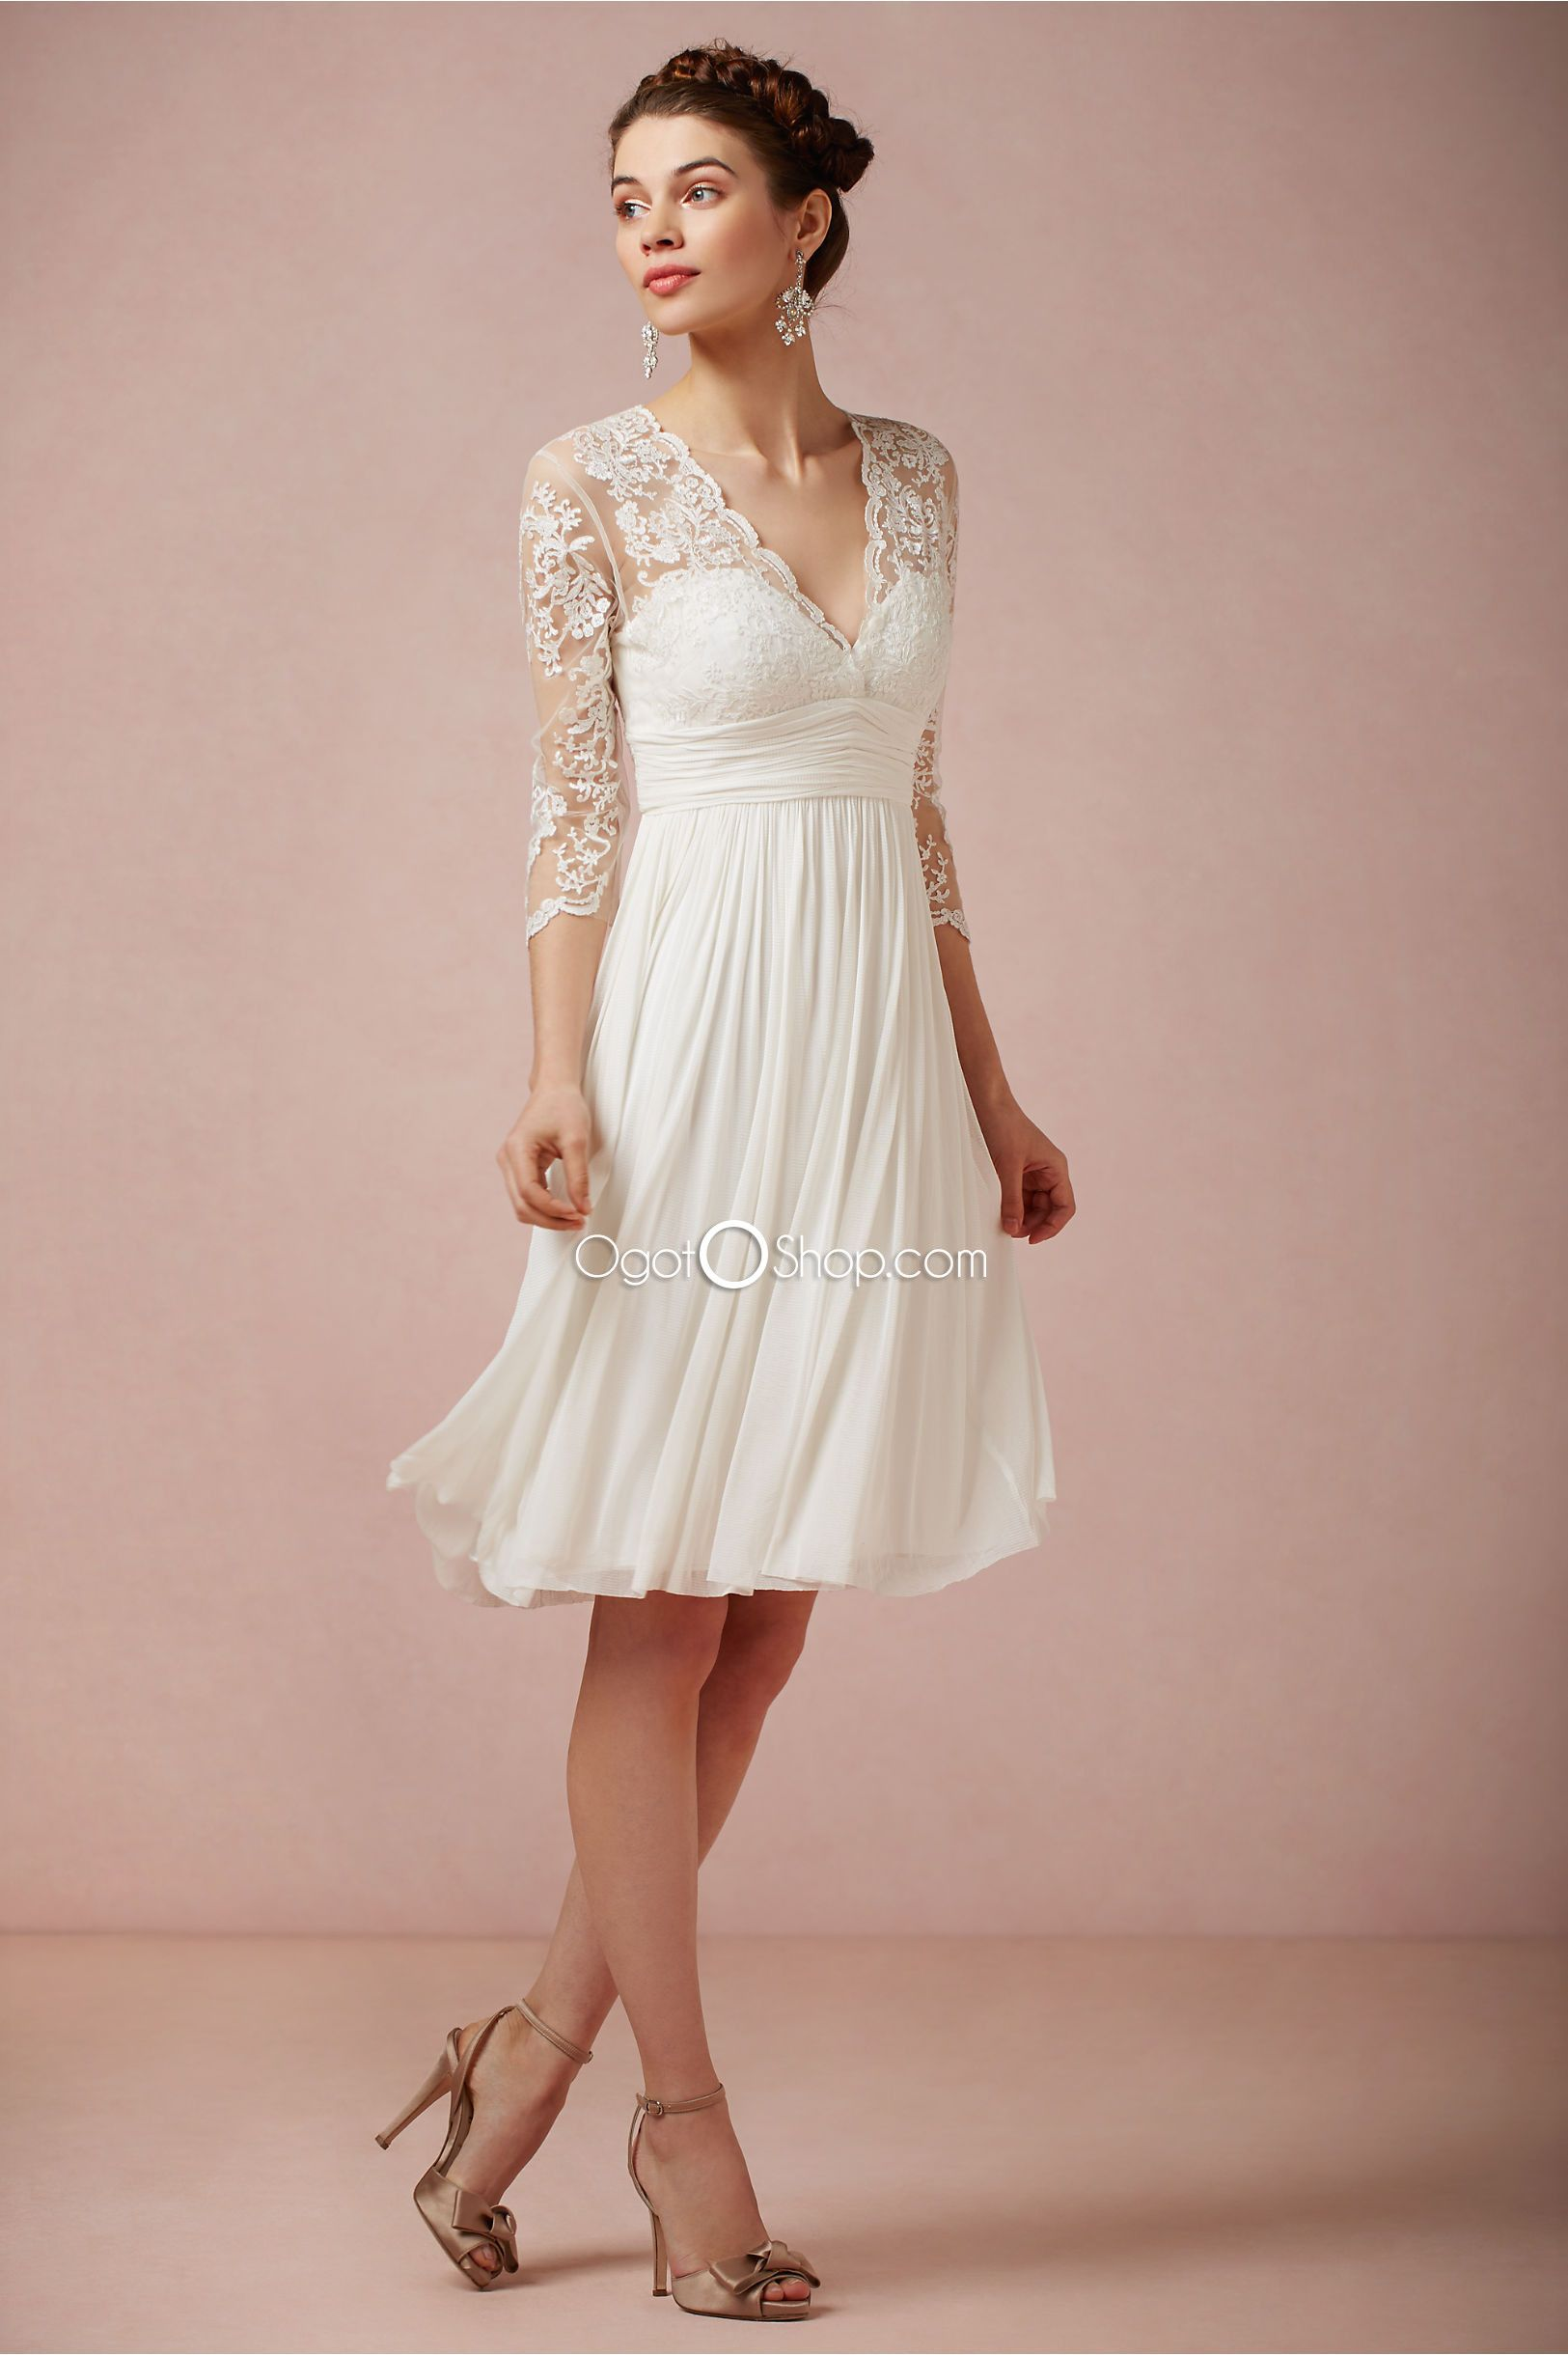 White Lace Bridesmaid Dresses - Missy Dress